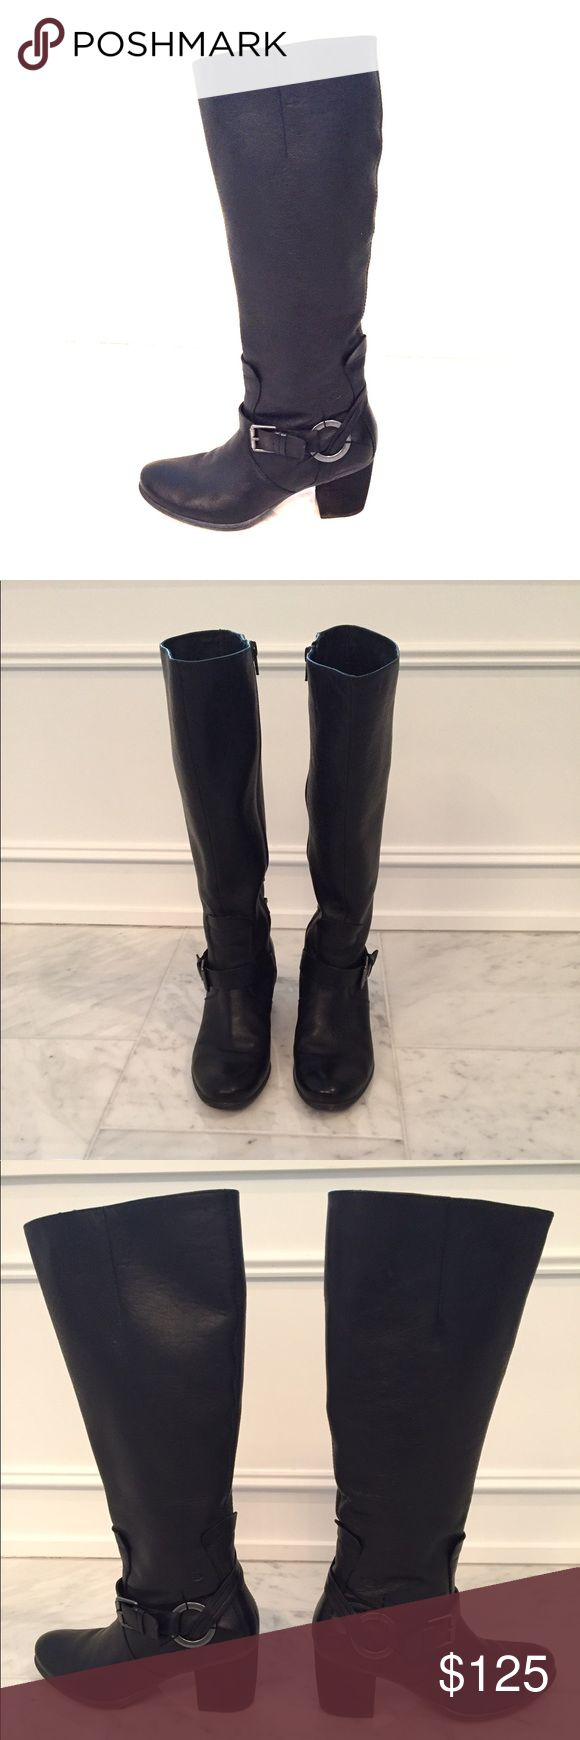 Josef Seibel Black Leather Boots - Size 8 Josef Seibel Black Leather Boots for sale. Excellent used condition. Very little signs of wear. Size 8. Fits perfect if you normally wear 7.5. Josef Seibel Shoes Heeled Boots